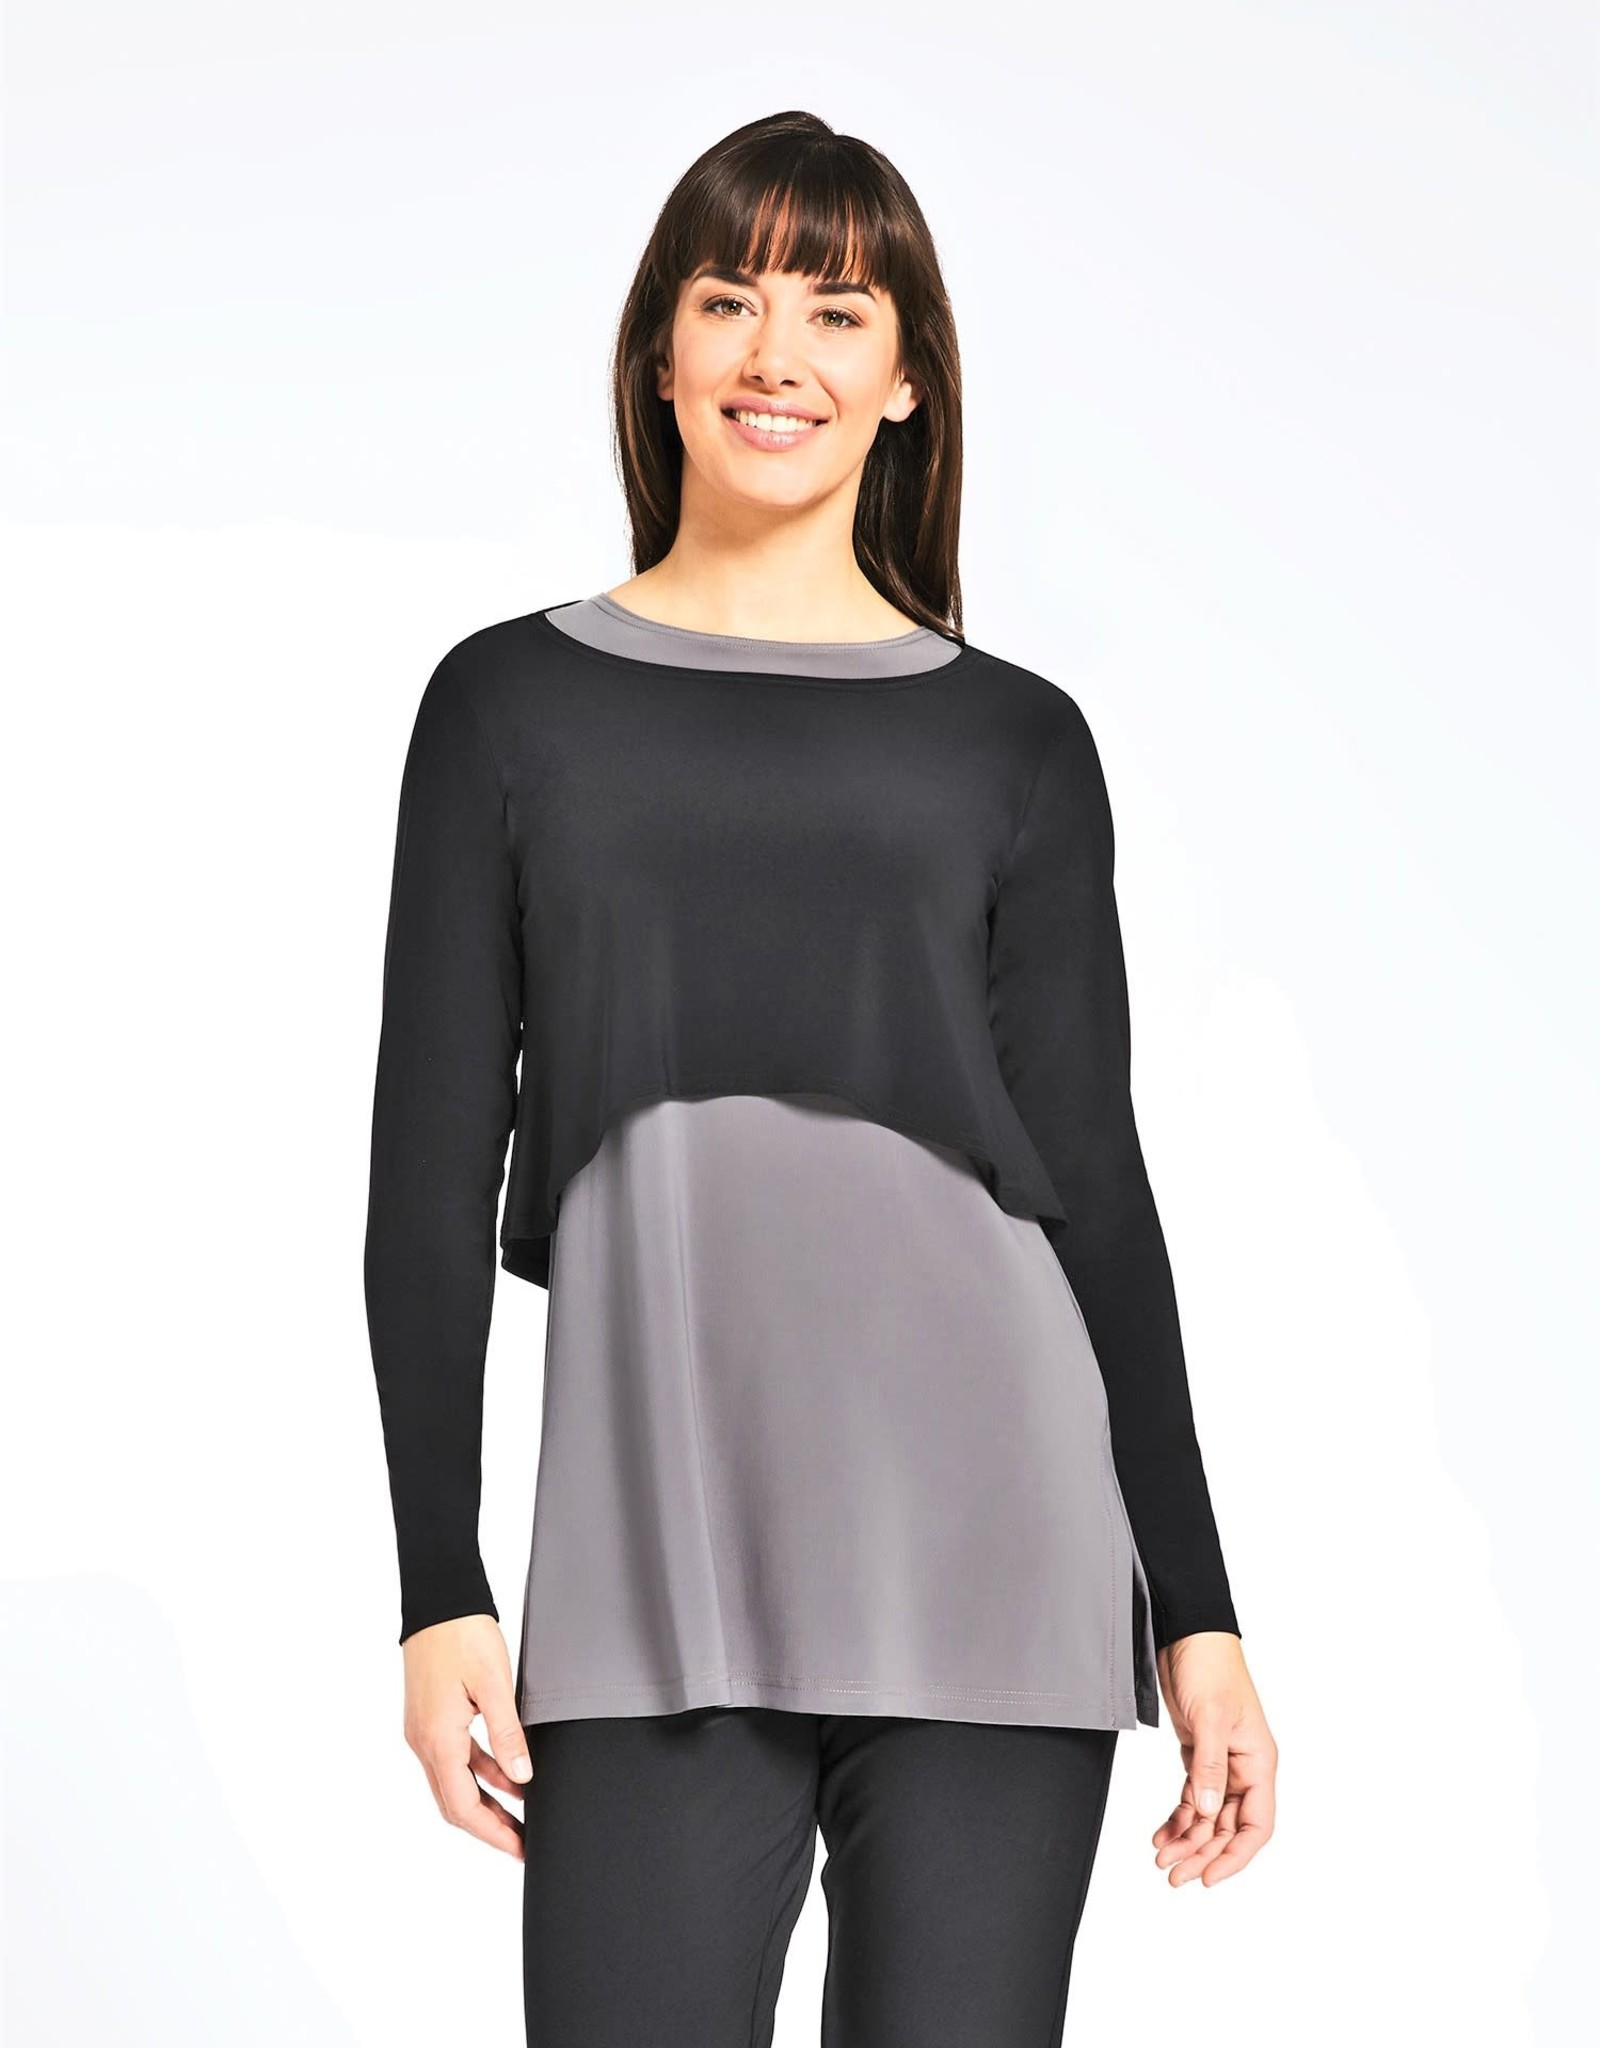 Sympli Shorty Top - Size 10 (Consignment)